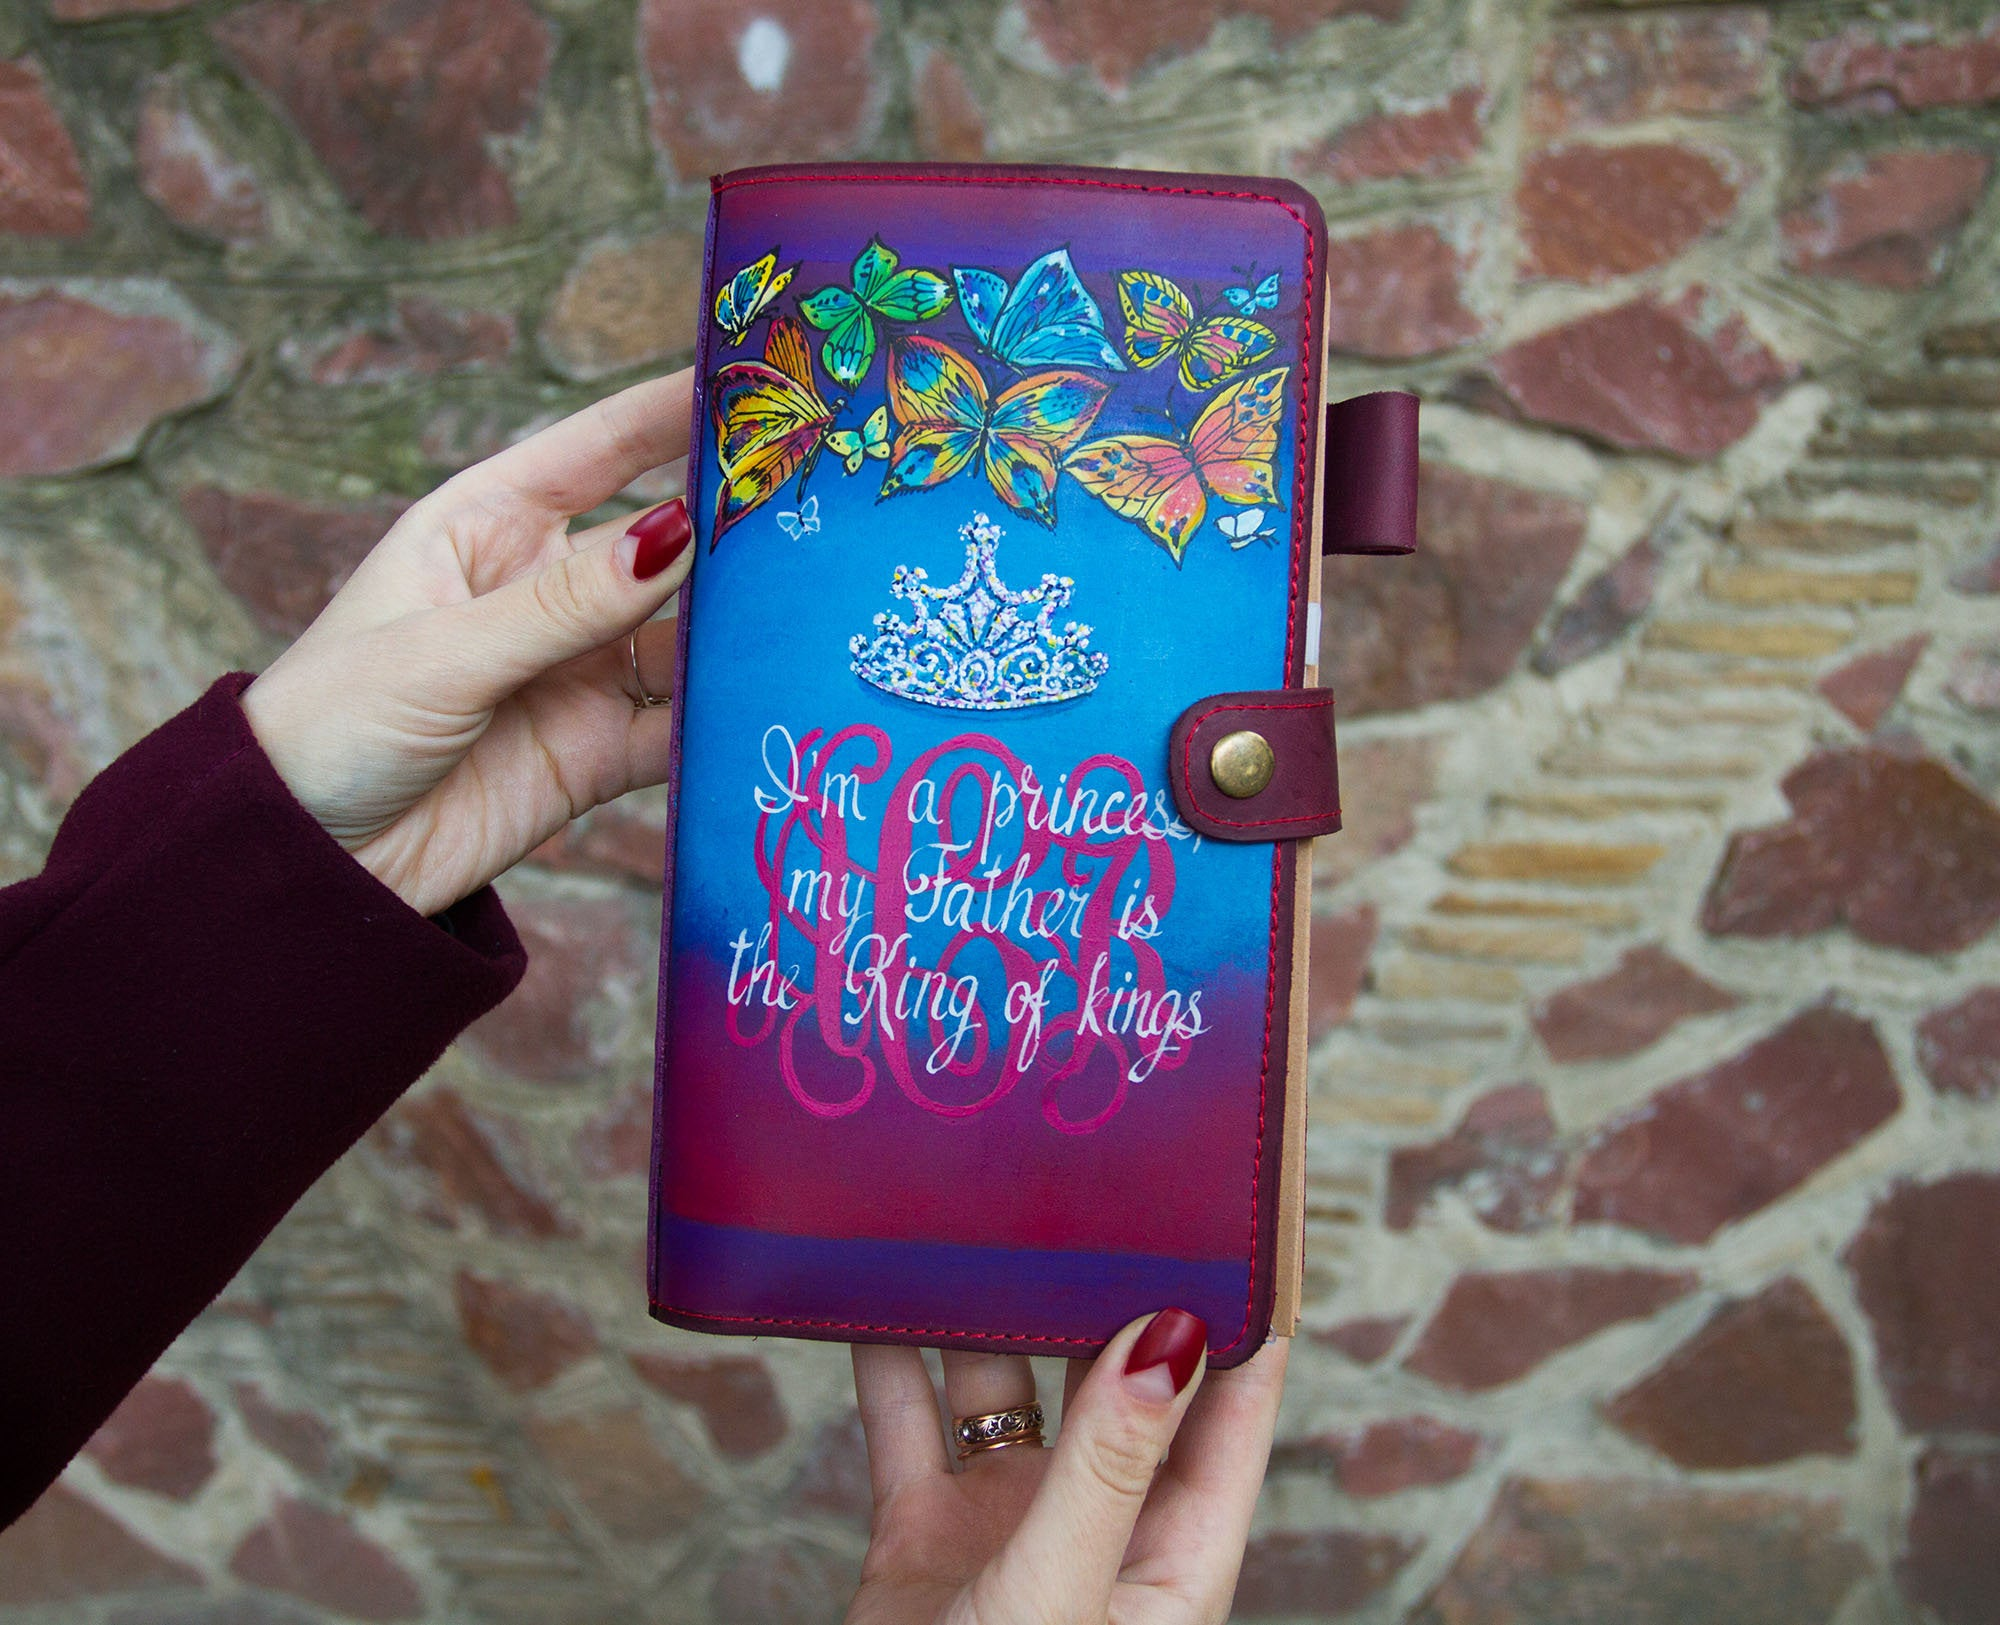 Personalized Leather Christ Journal I Am a Princess My Father Is King of Kings Bible Bullet Journal Travelers Notebook  Hand Painted